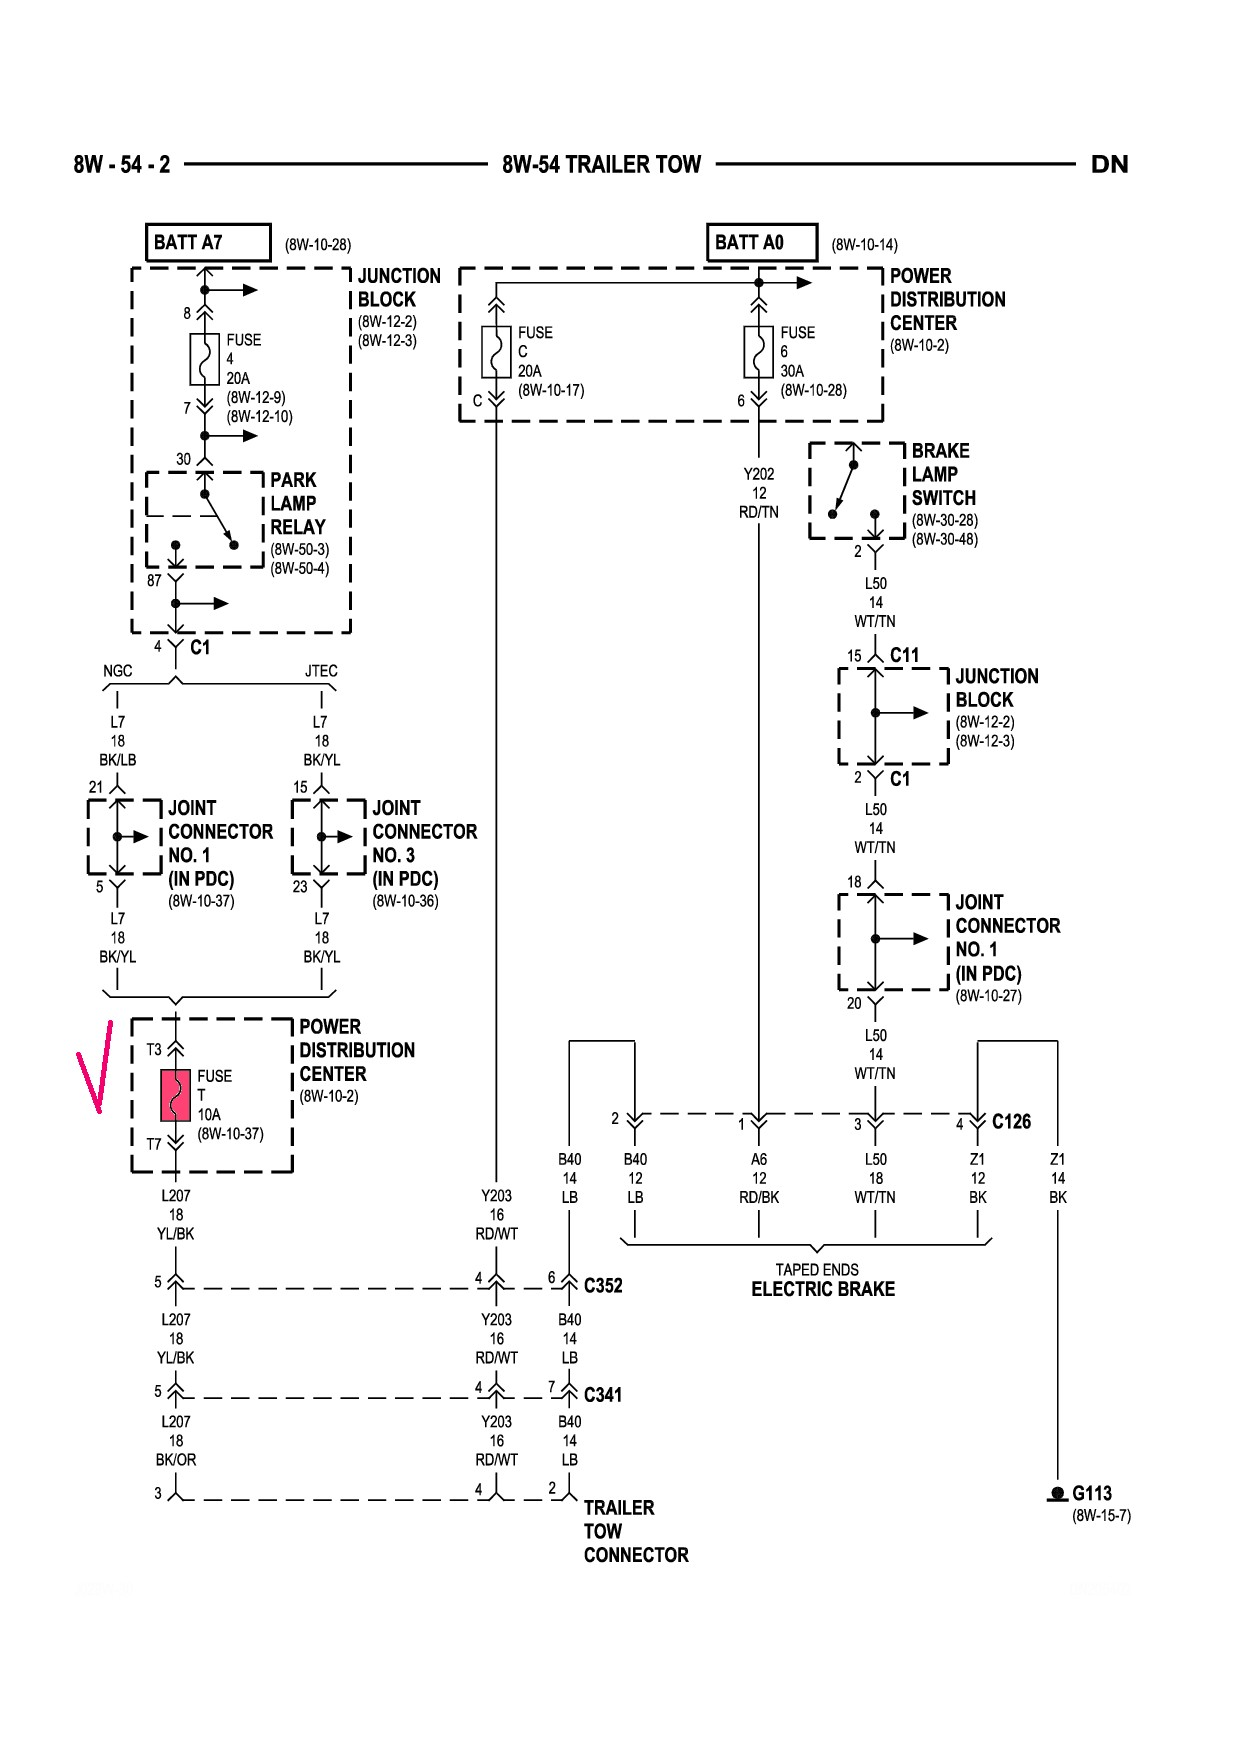 98 Dodge Durango Engine Diagram - Wiring Diagram Networks